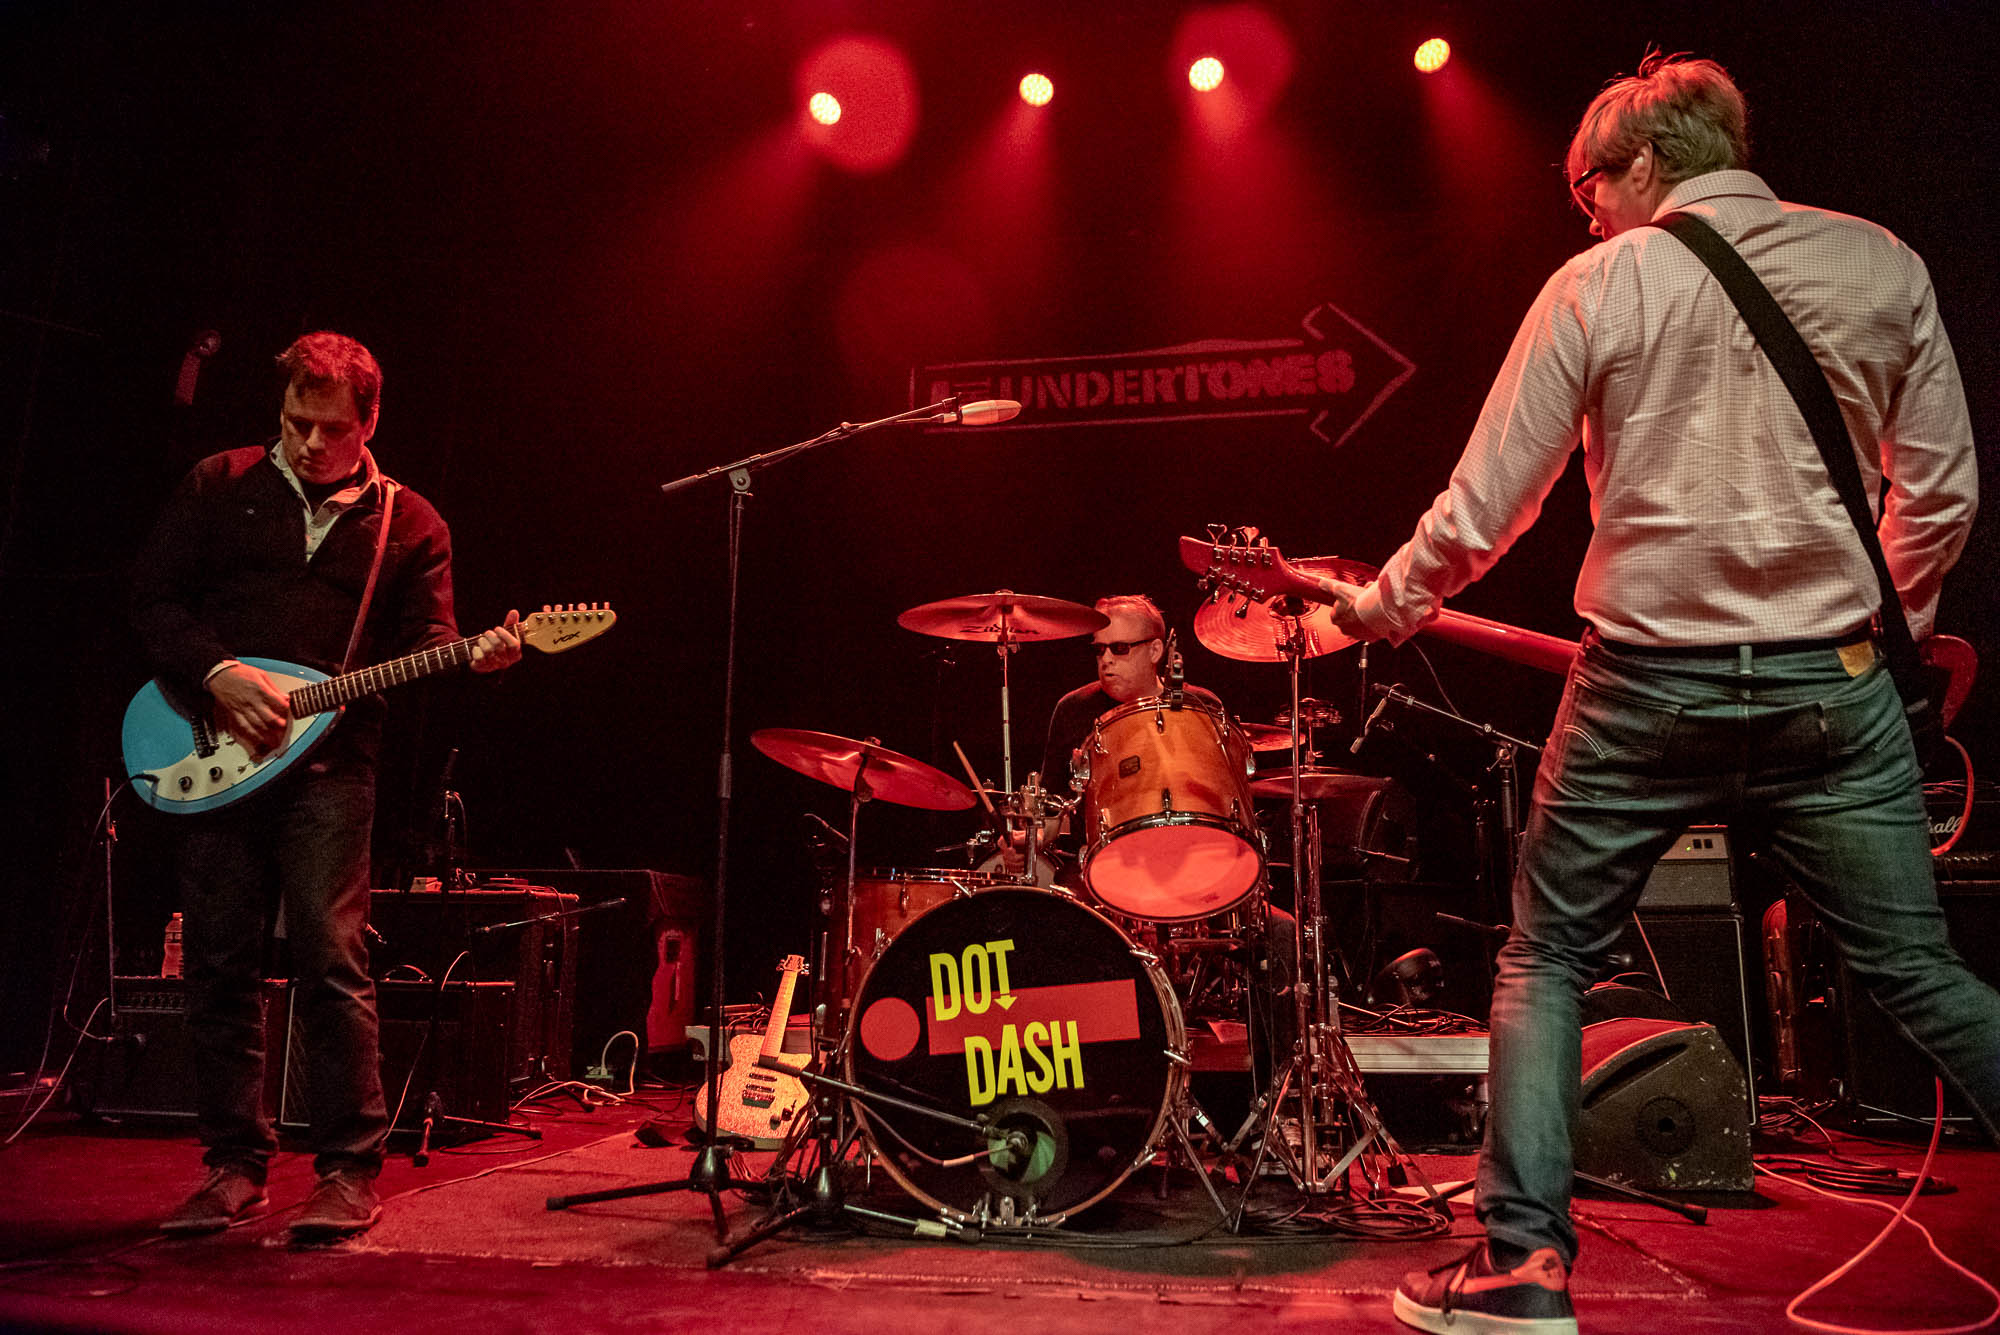 Dot Dash at Gramercy Theatre on Thursday, May 23, 2019.